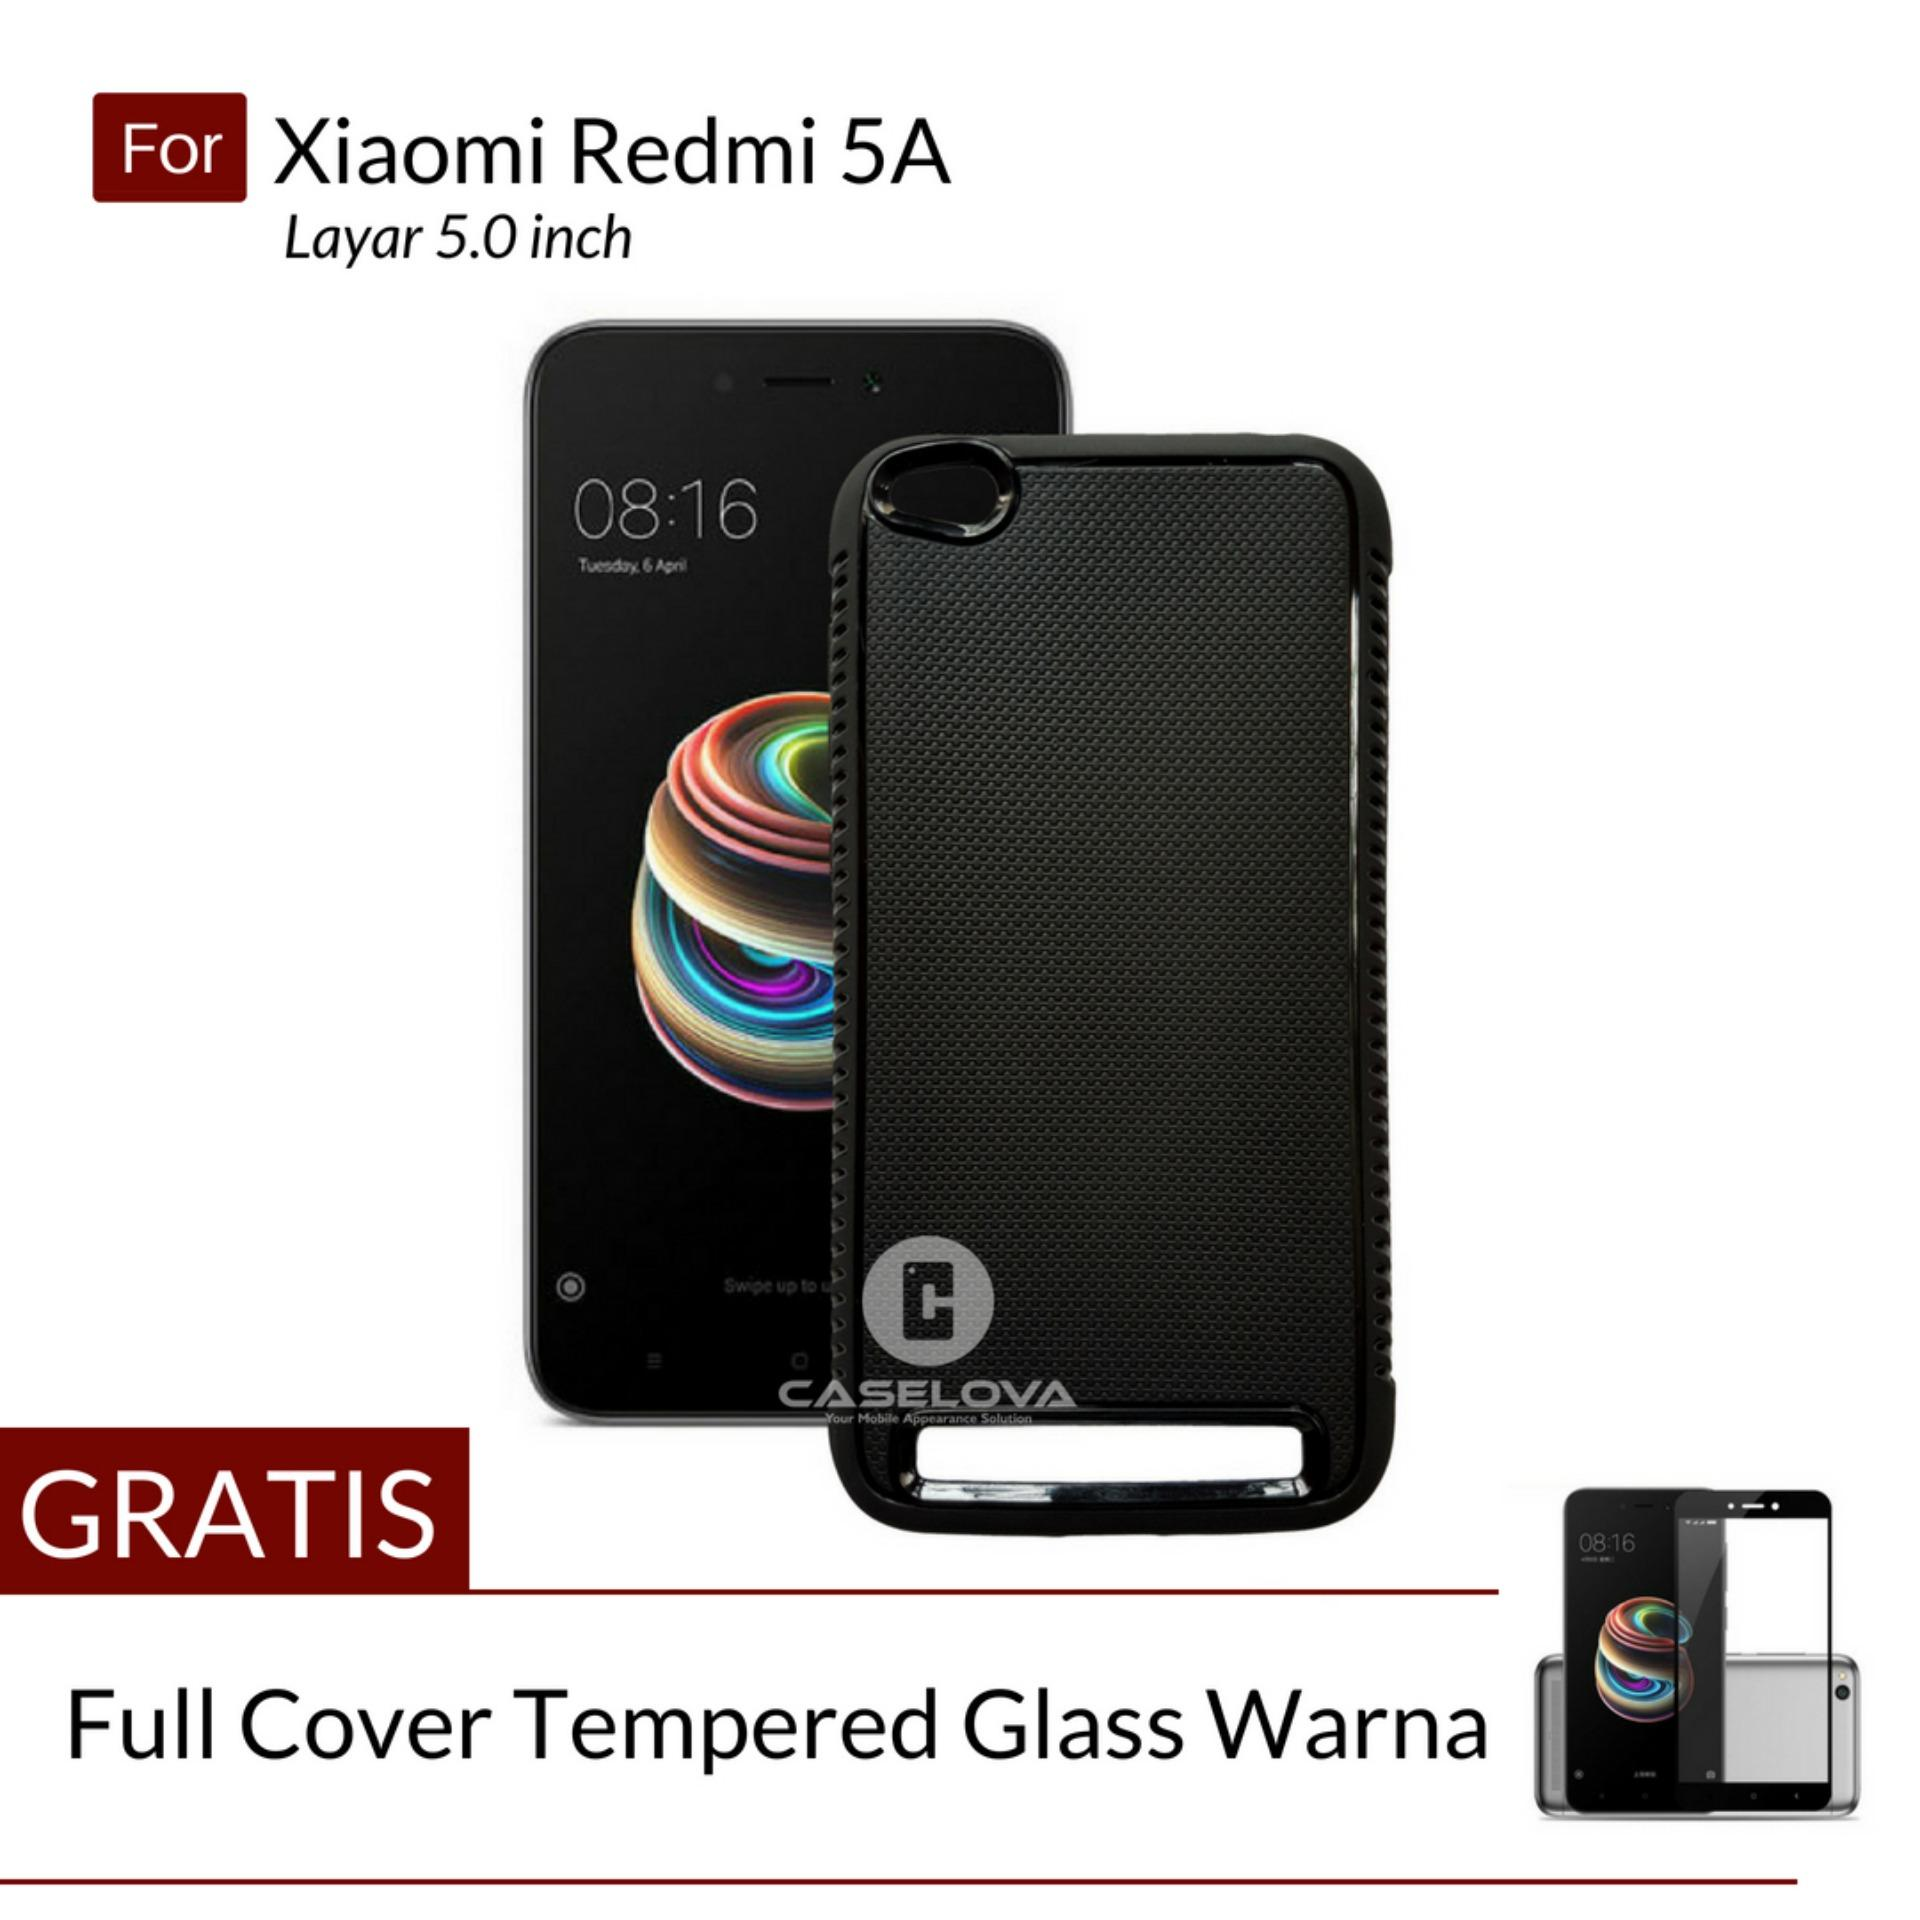 Case Tough Armor Karbon Luxury Carbon For Xiaomi Redmi 4a Black Free Myuser Tempered Glass Caselova Shatterproof Protection Tpu Anti Slip 5a Layar 50 Inch